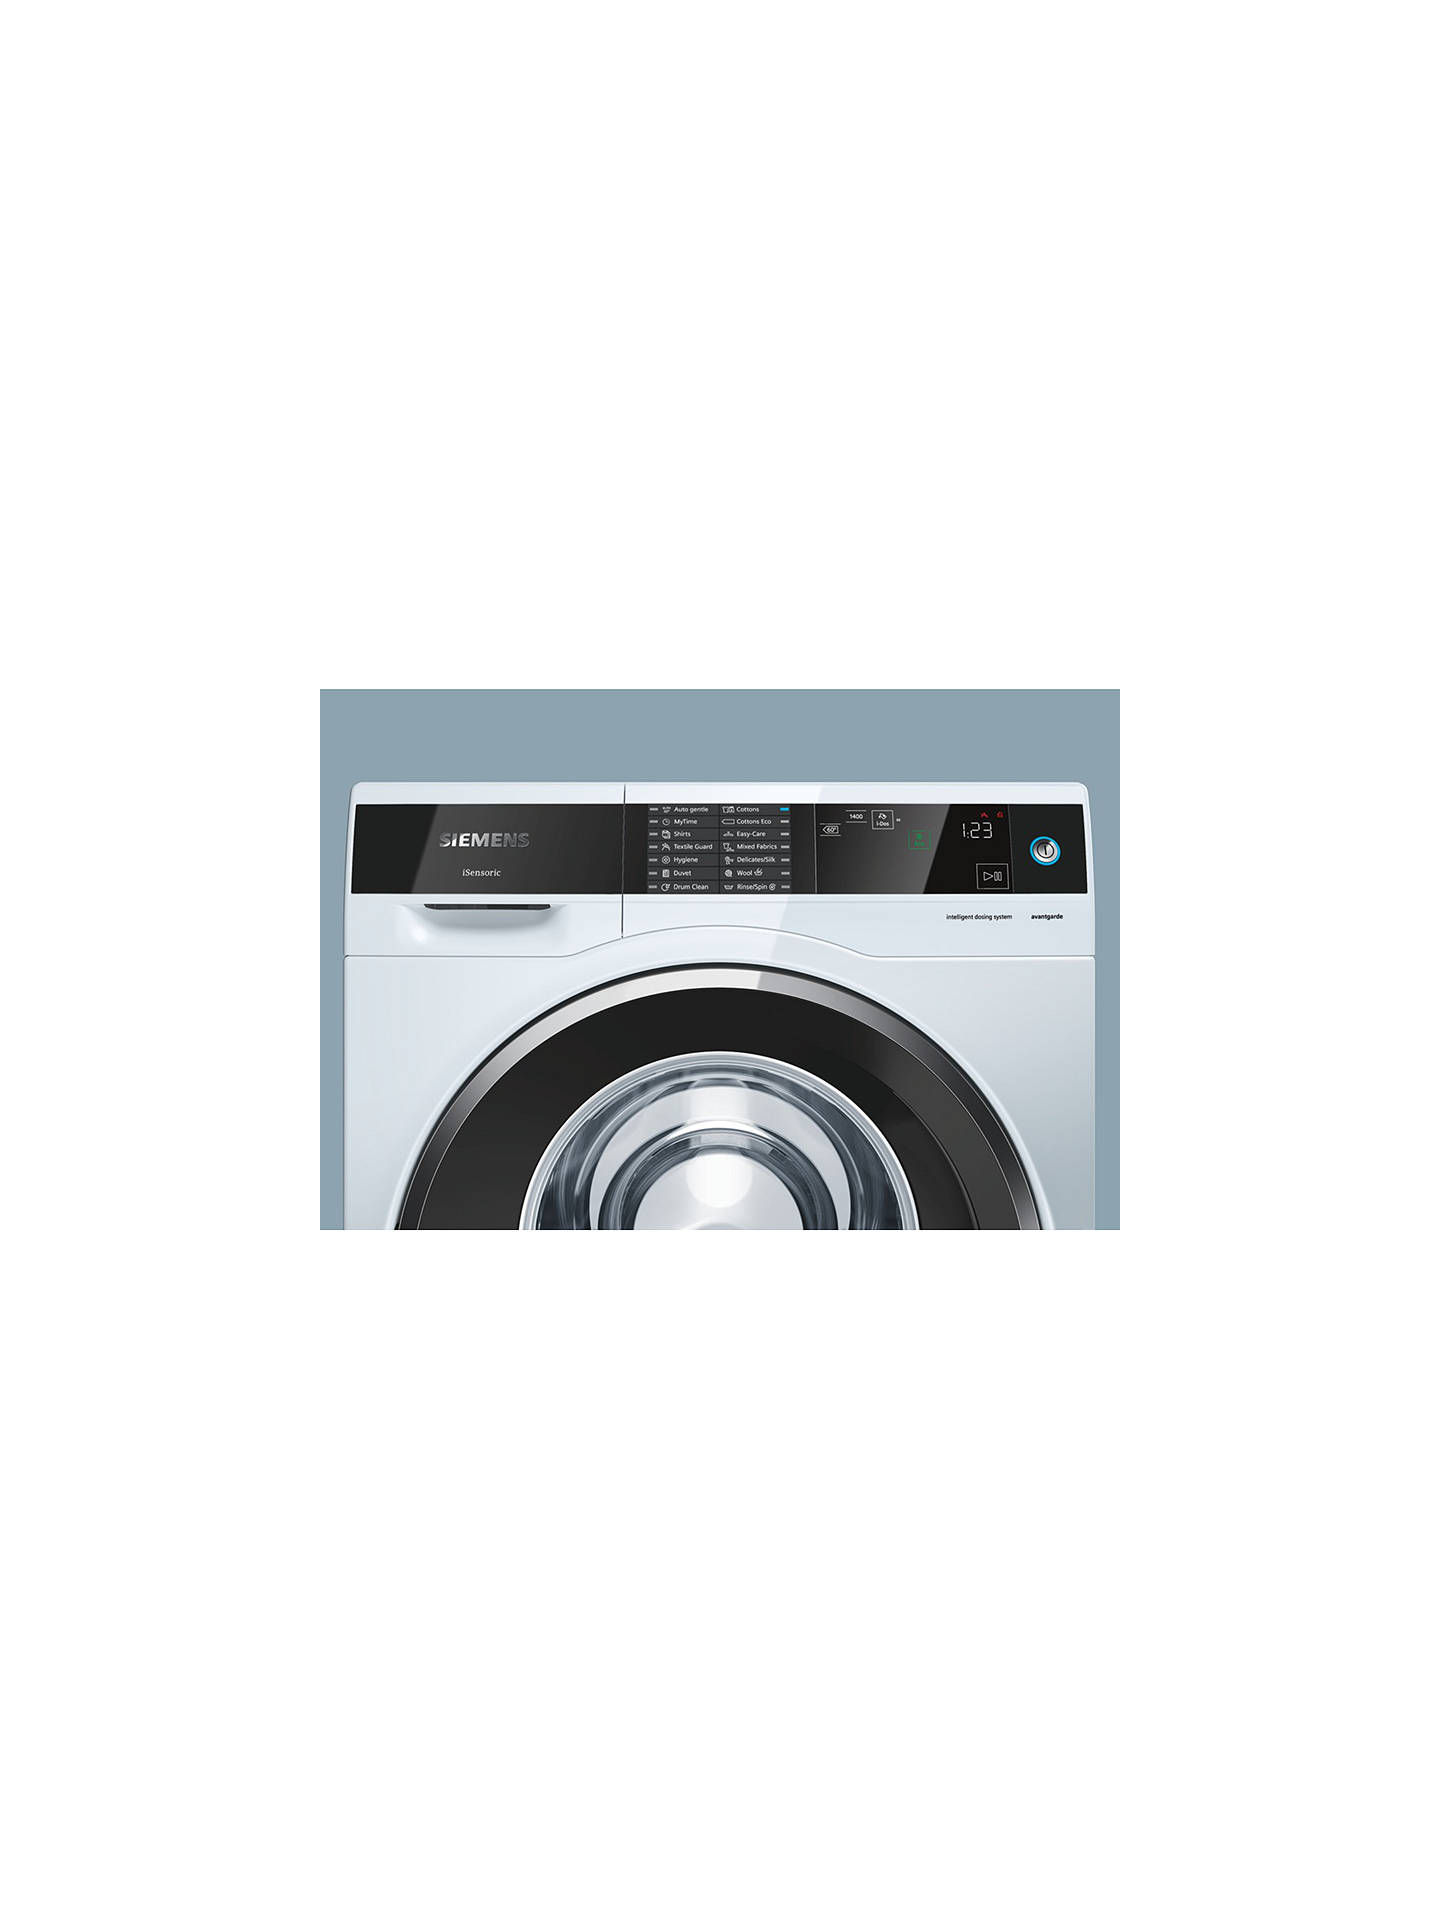 BuySiemens avantgarde iSensoric Freestanding Washing Machine, 9kg Load, A+++ Energy Rating, 1400rpm Spin Online at johnlewis.com